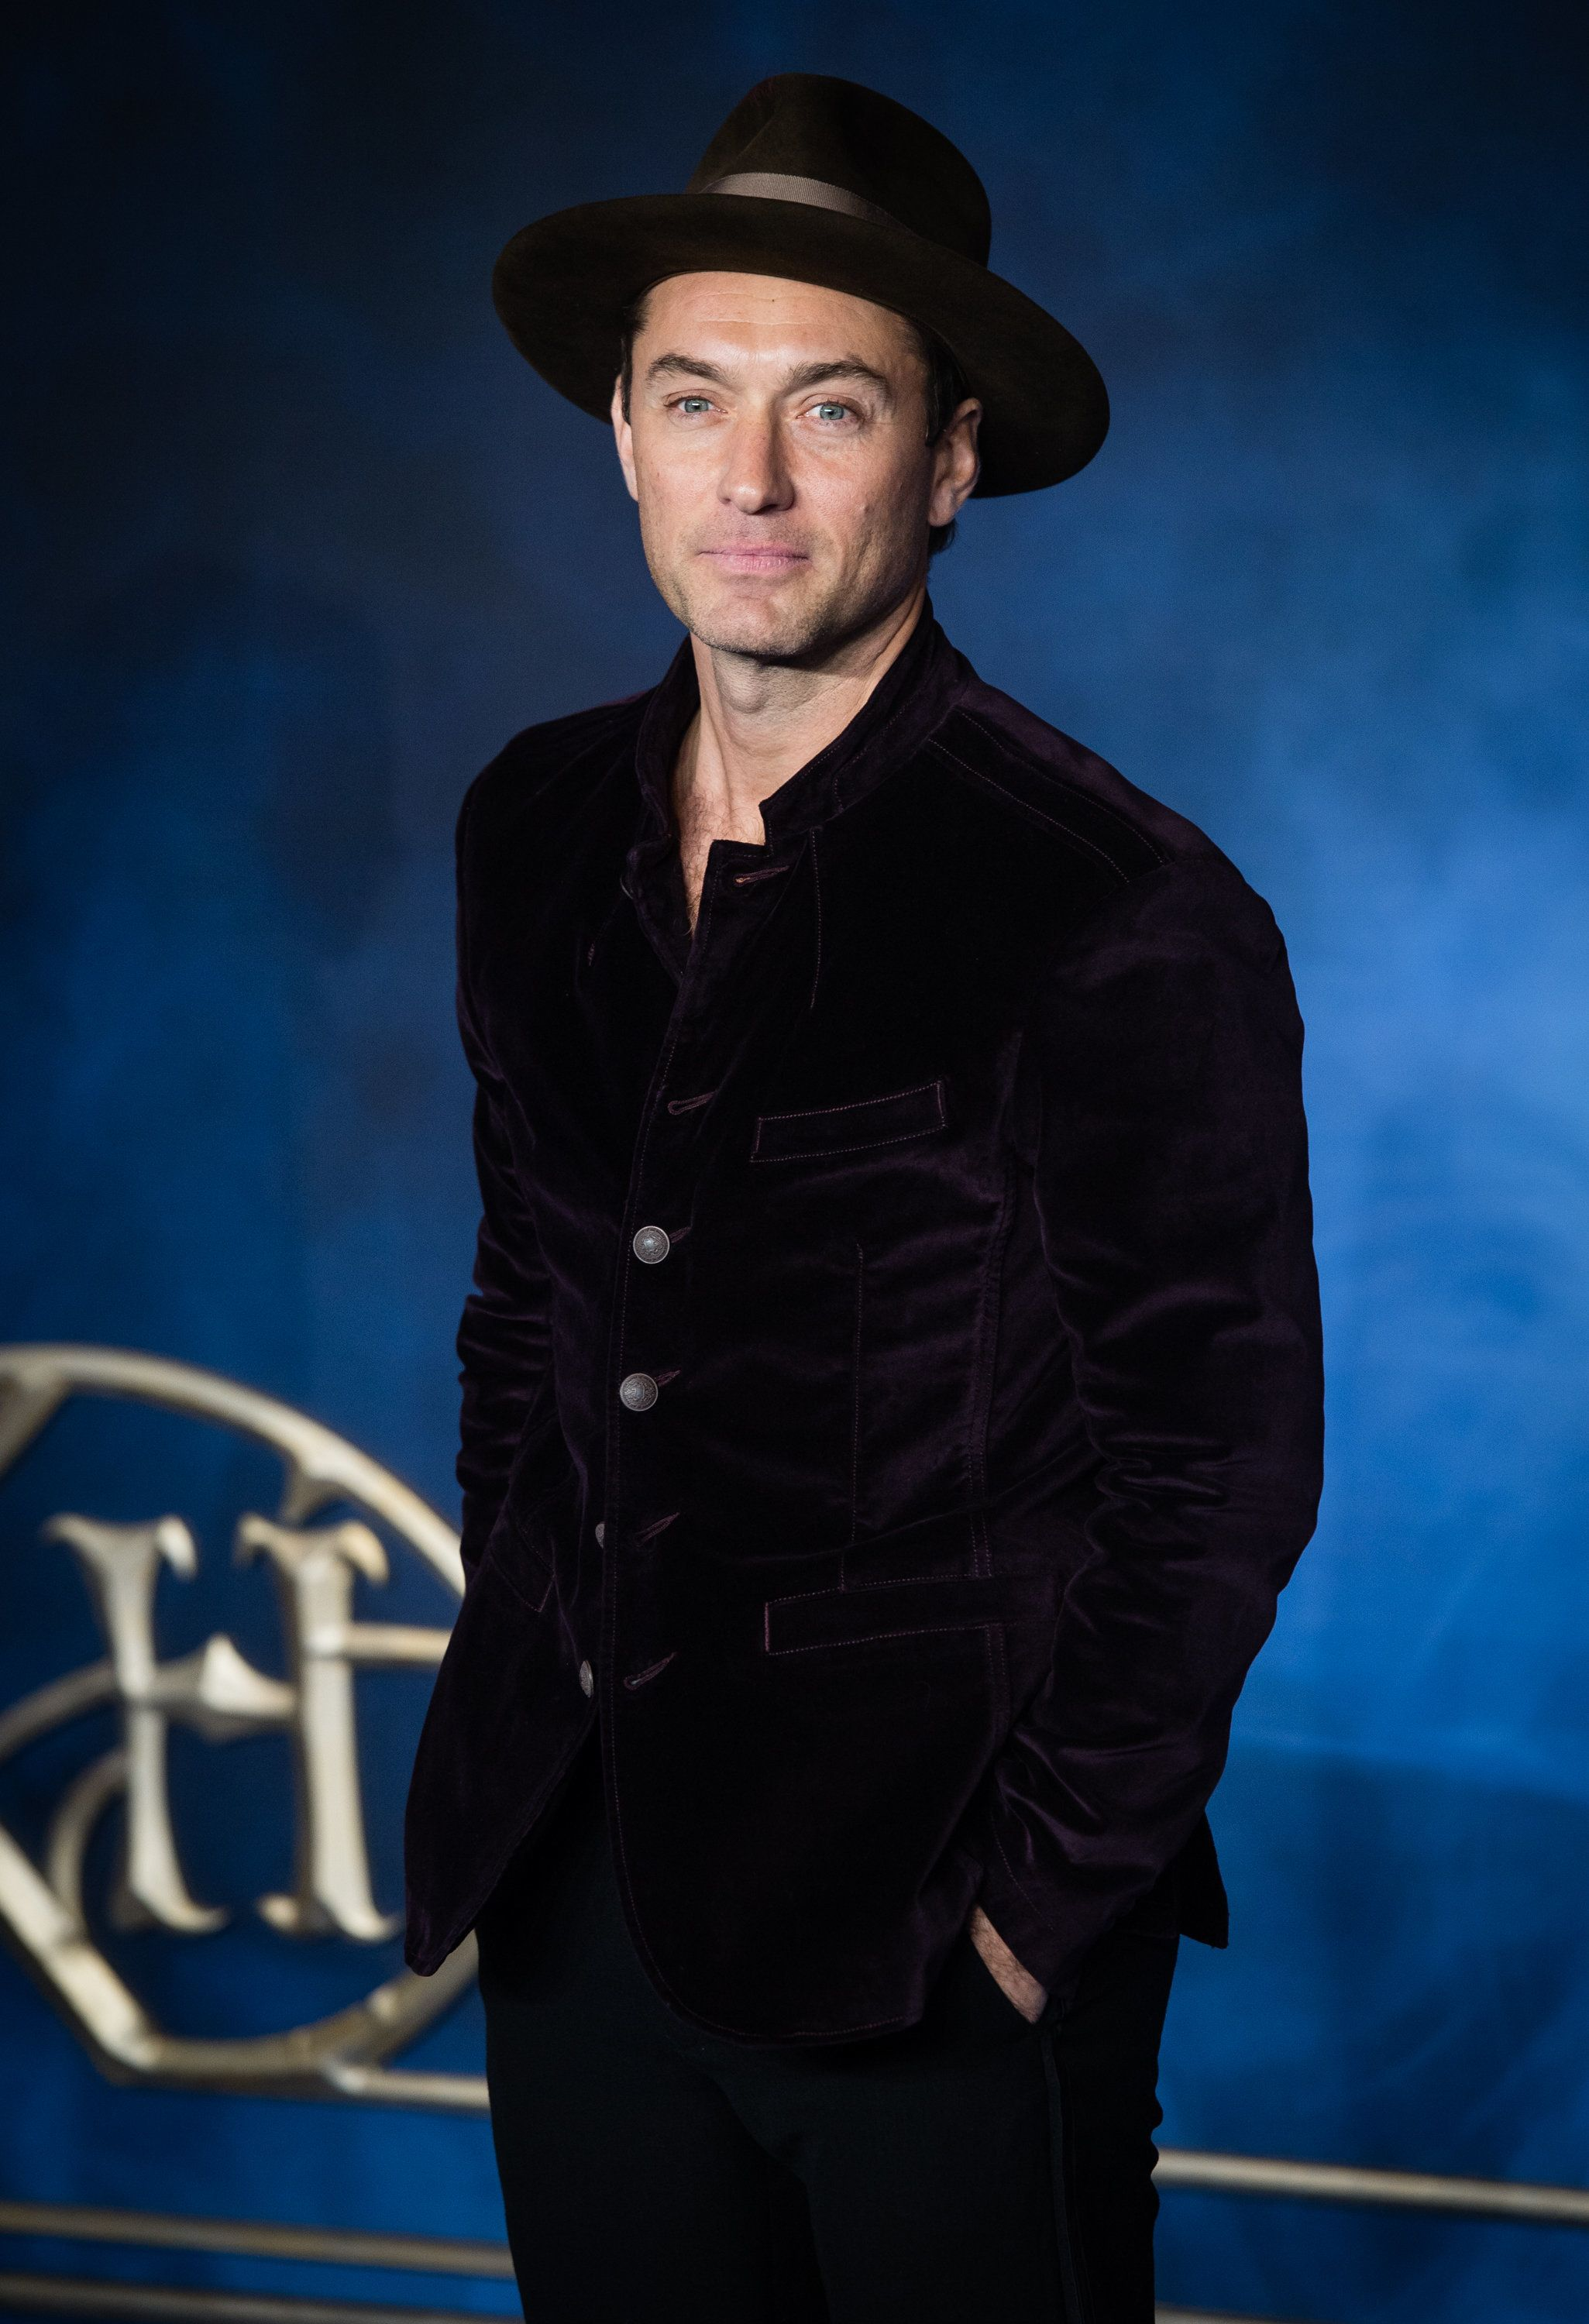 LONDON, ENGLAND - NOVEMBER 13:  Jude Law attends the UK Premiere of 'Fantastic Beasts: The Crimes Of Grindelwald' at Cineworld Leicester Square on November 13, 2018 in London, England.  (Photo by Samir Hussein/WireImage)